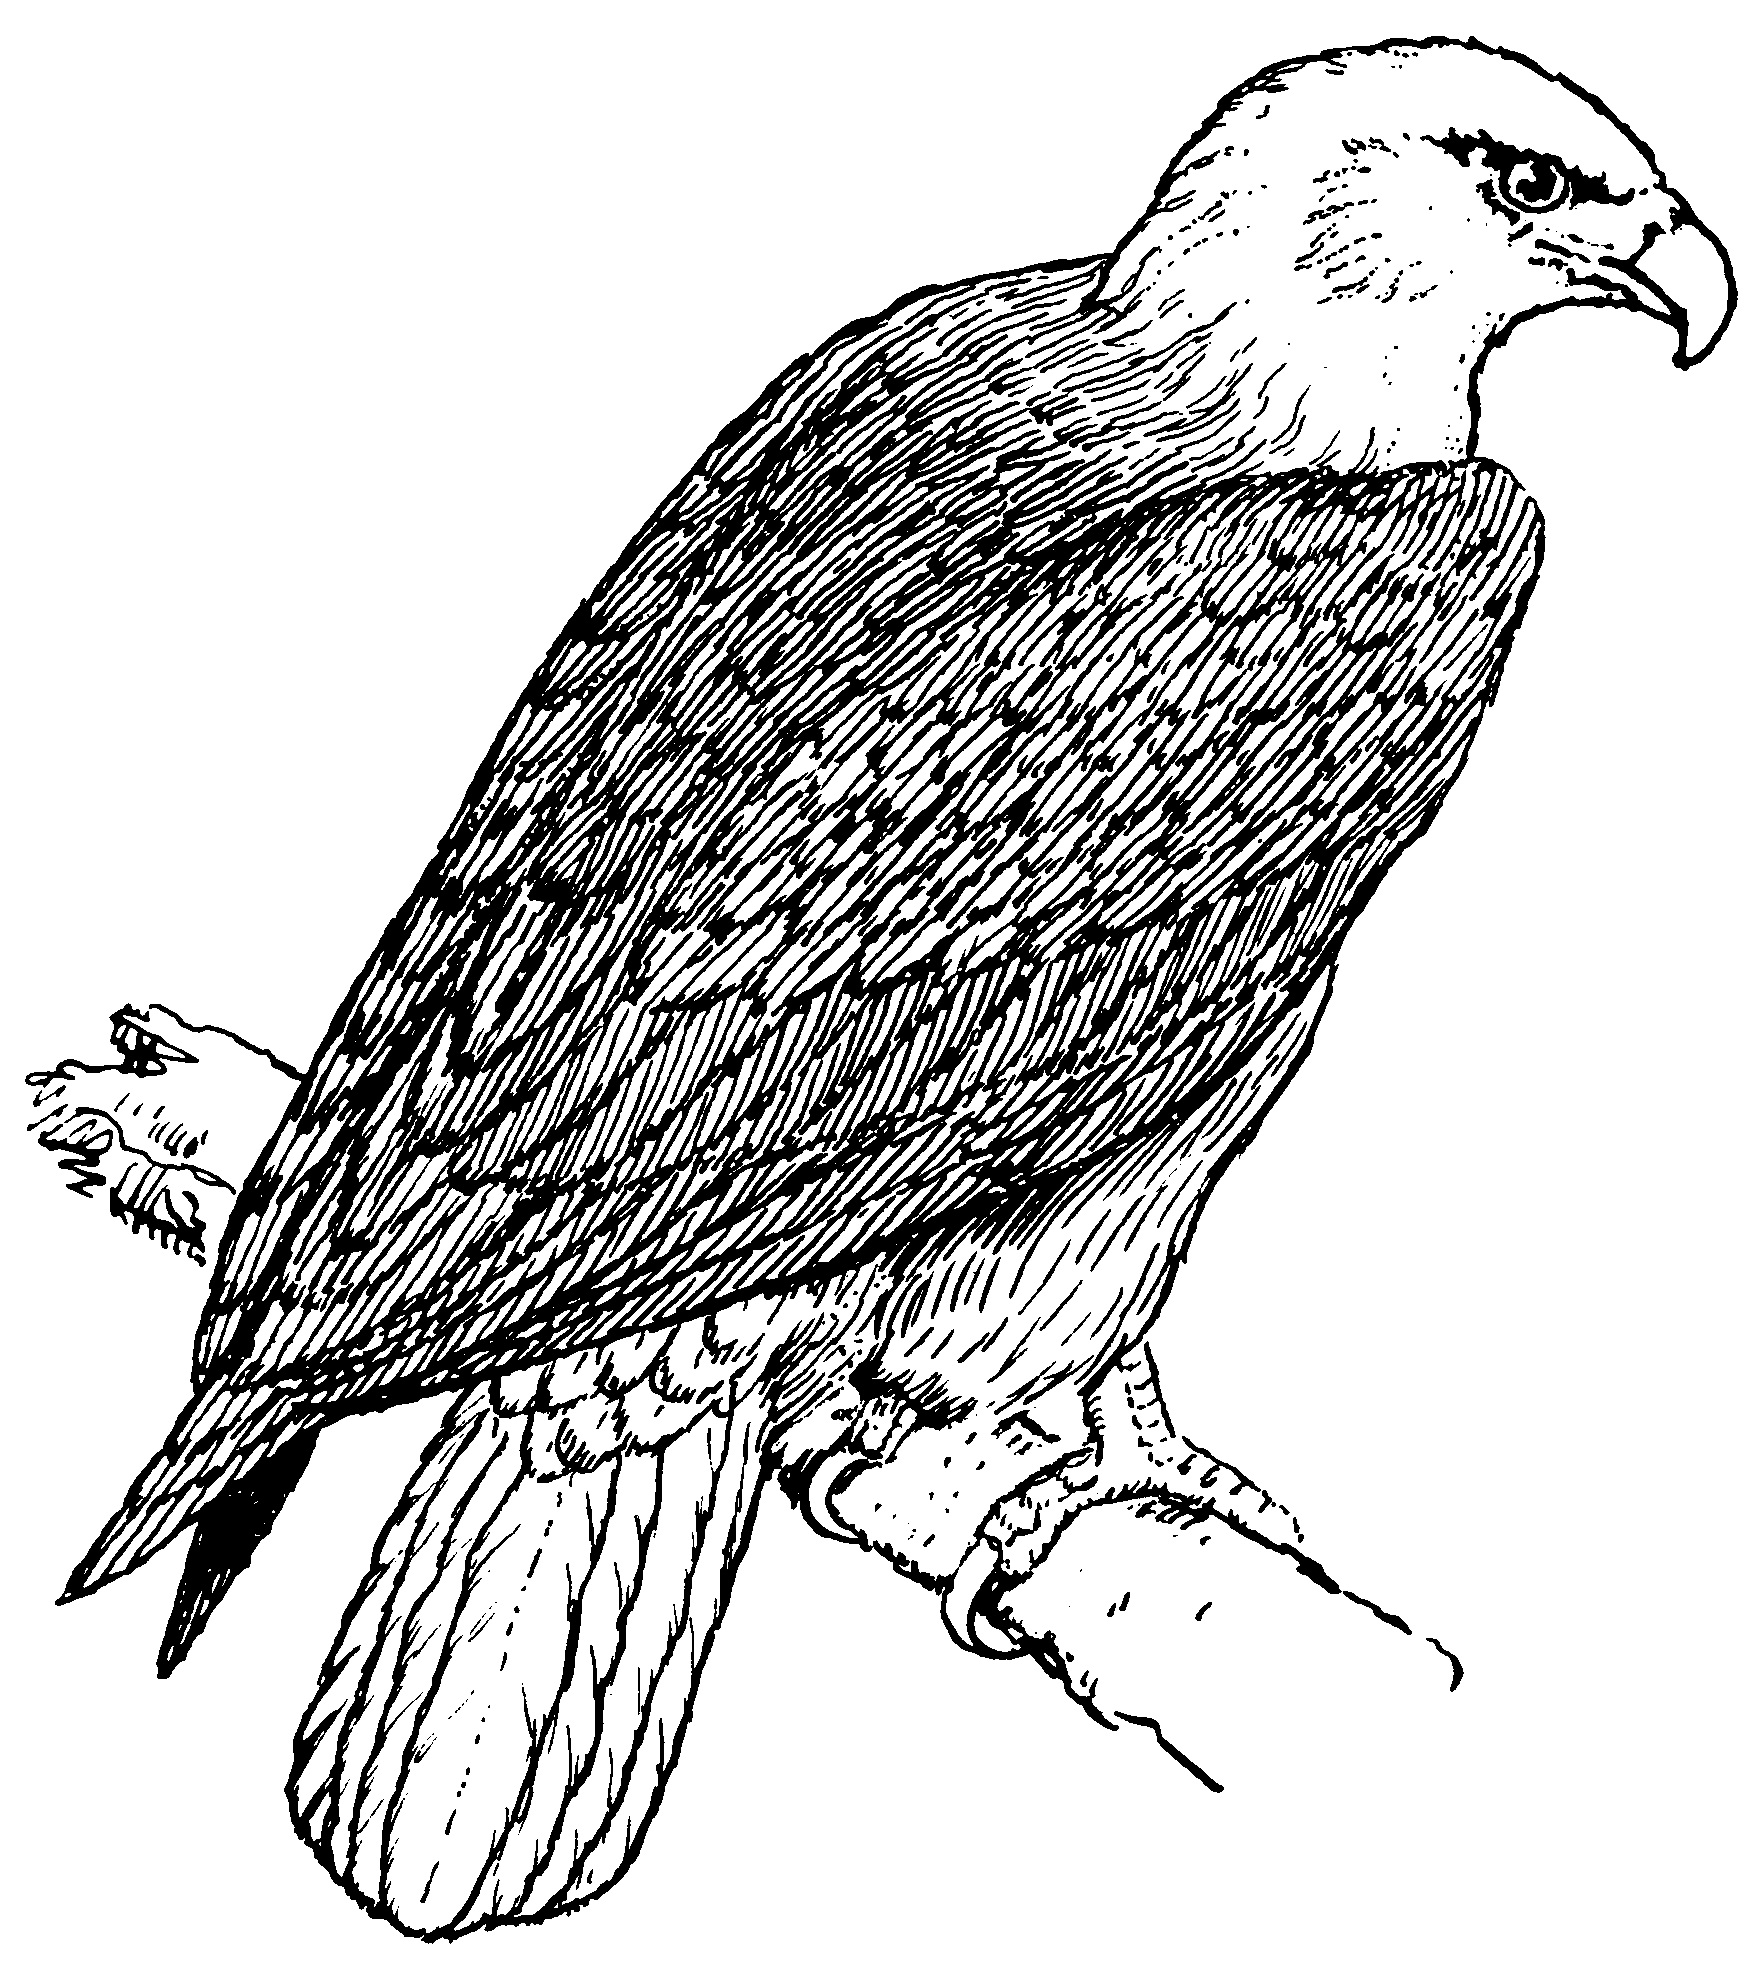 Bird Coloring Pages. Free, Printable, Realistic